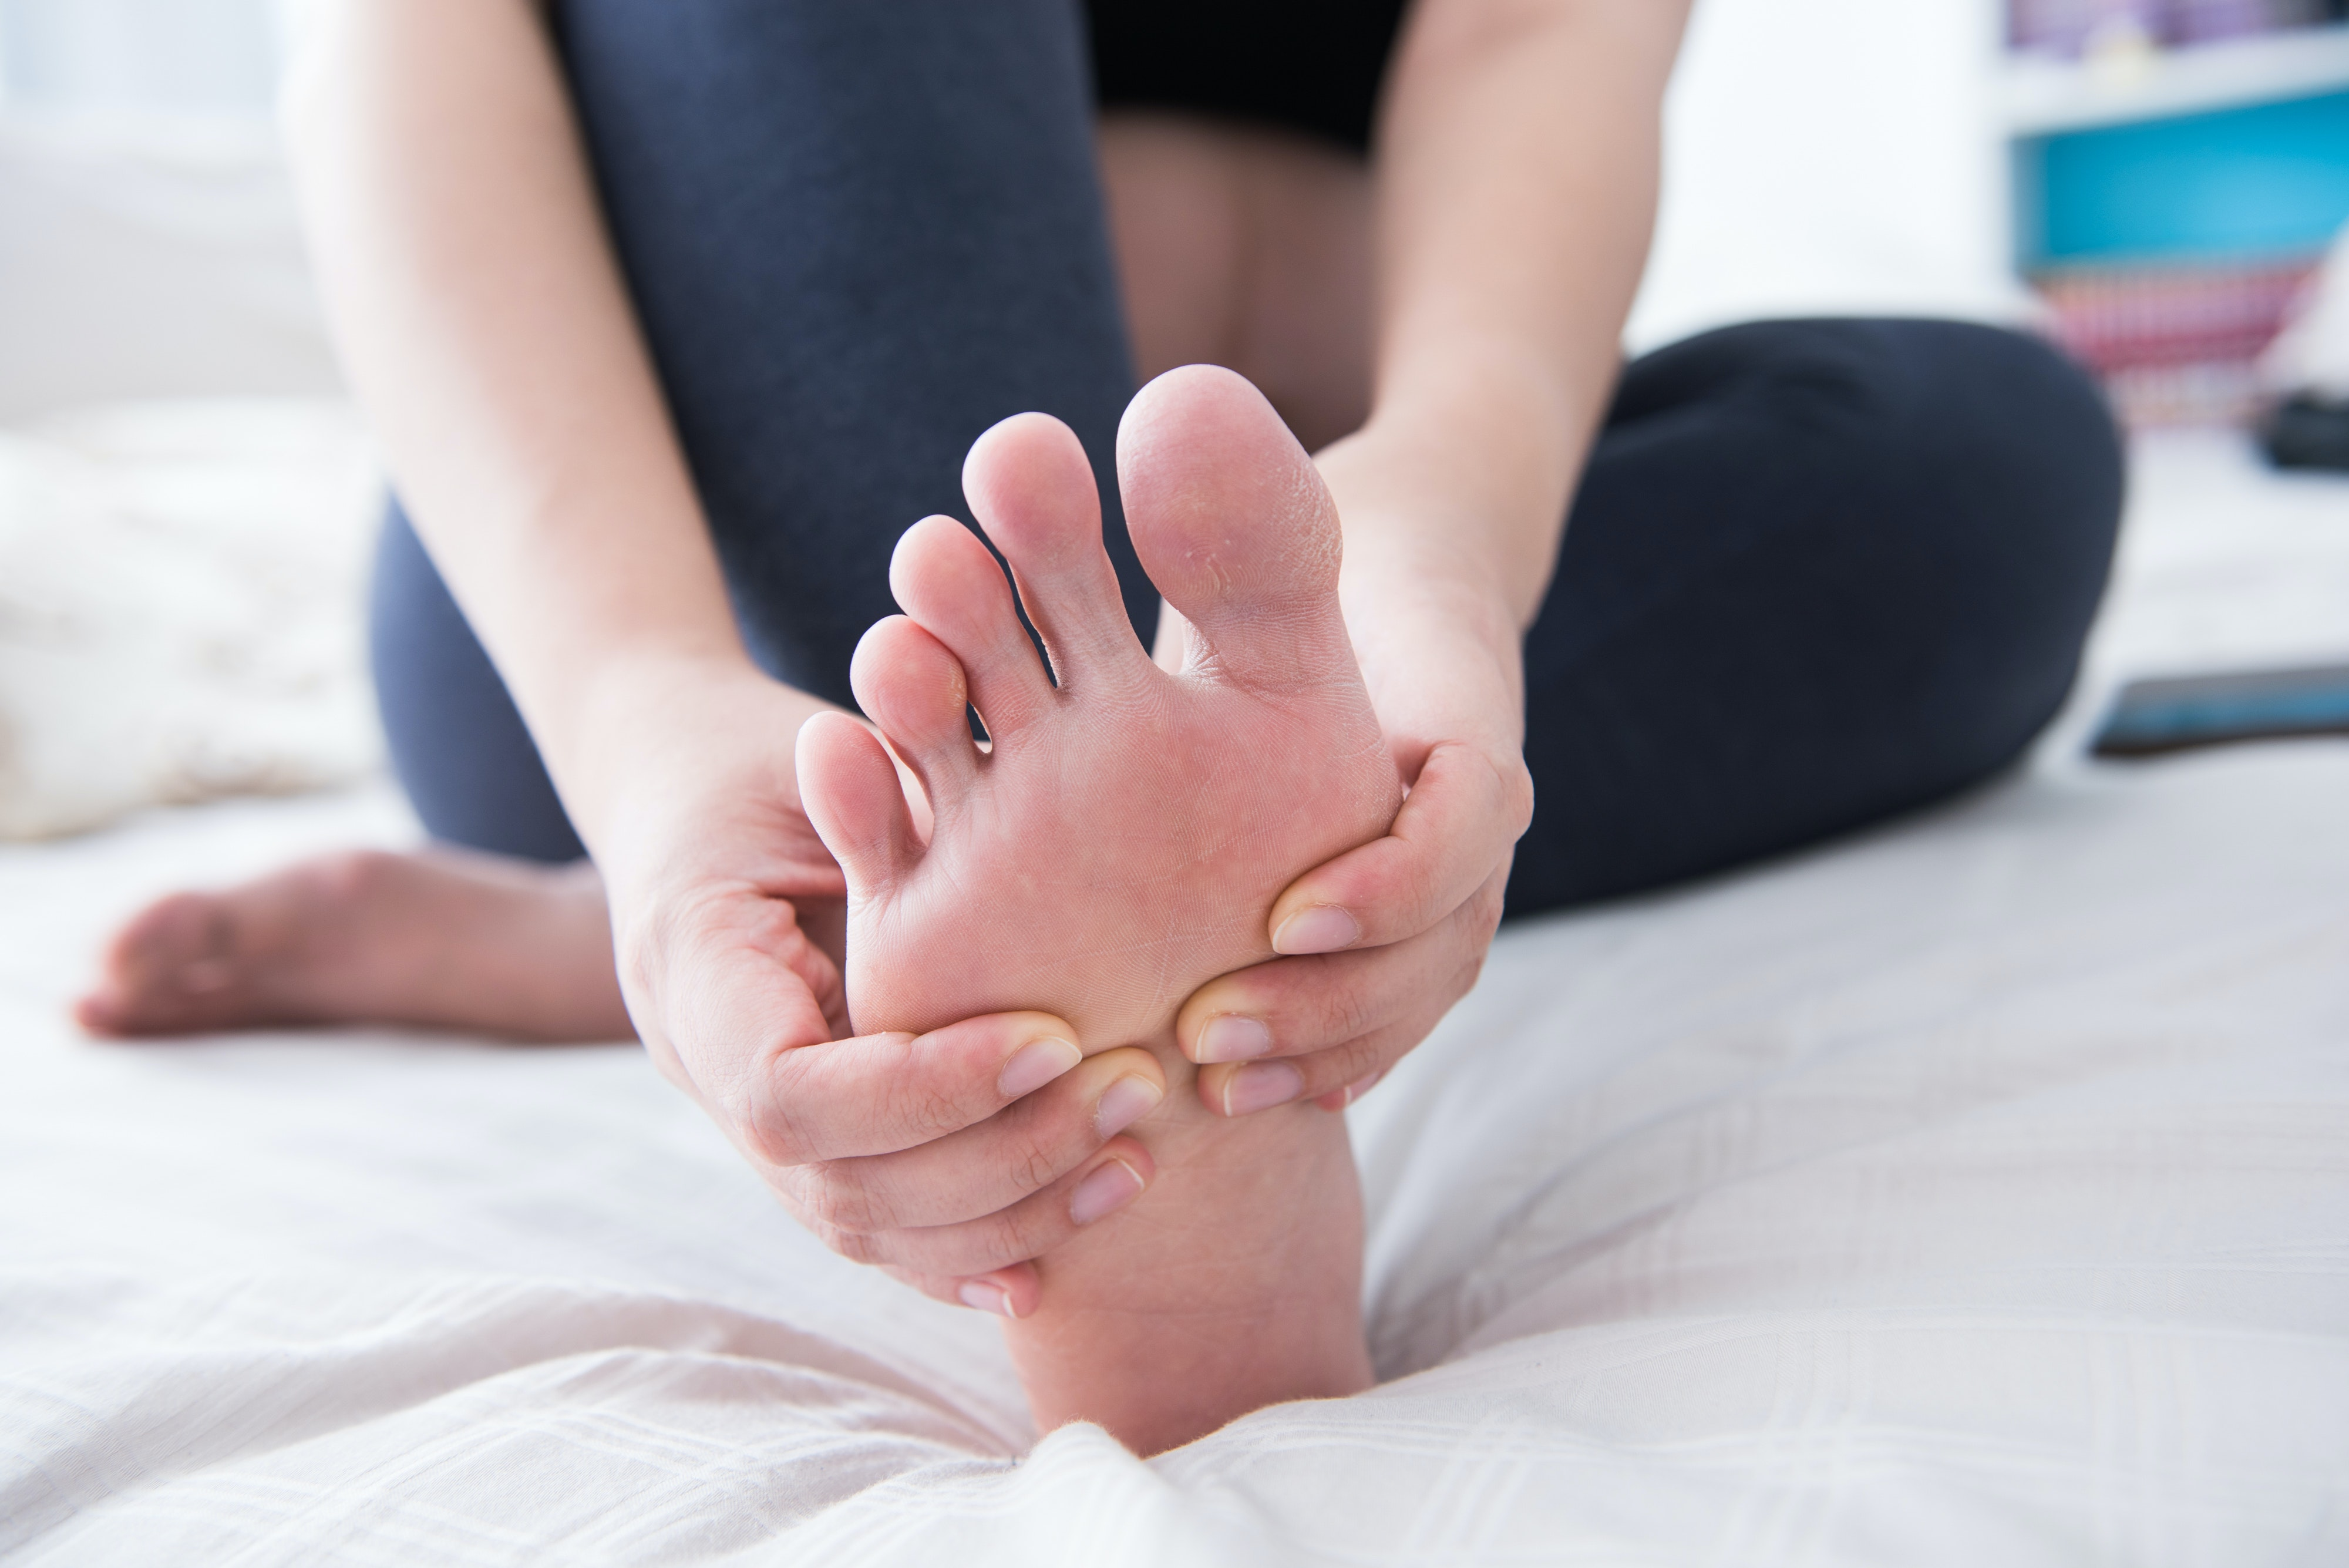 An image depicting a person suffering from tingling foot symptoms